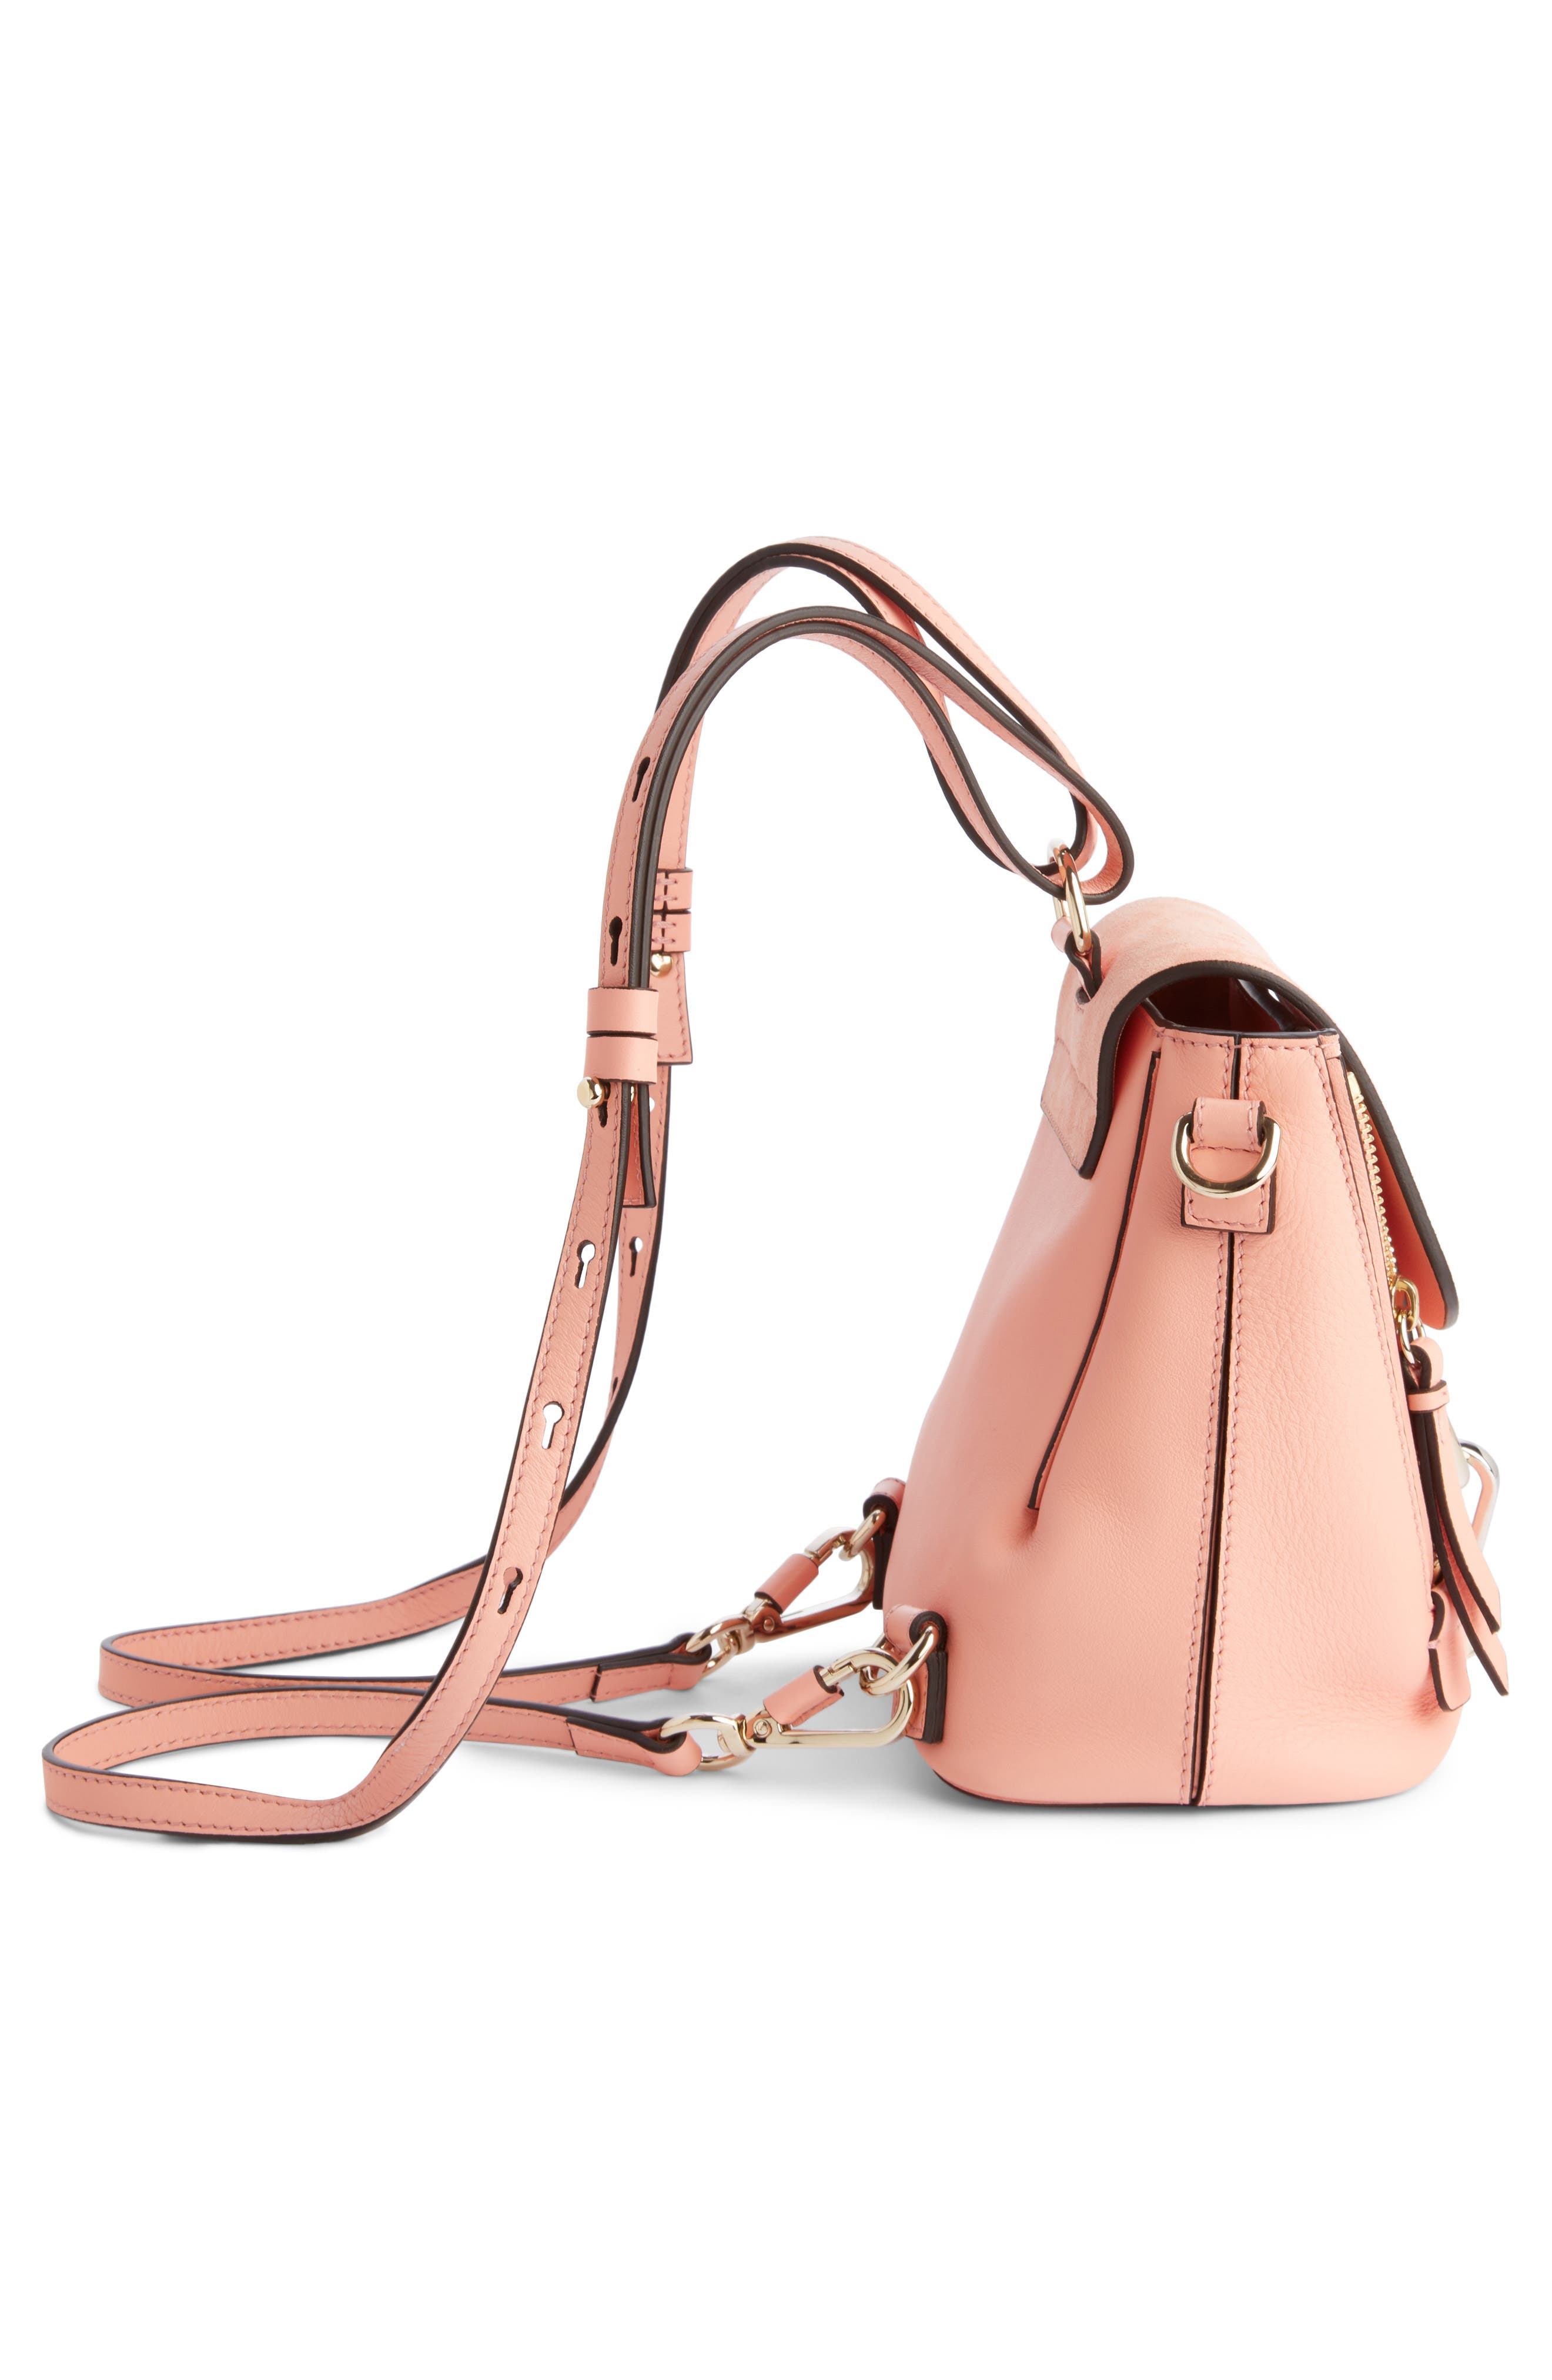 Alternate Image 3  - Chloé Mini Faye Leather & Suede Backpack